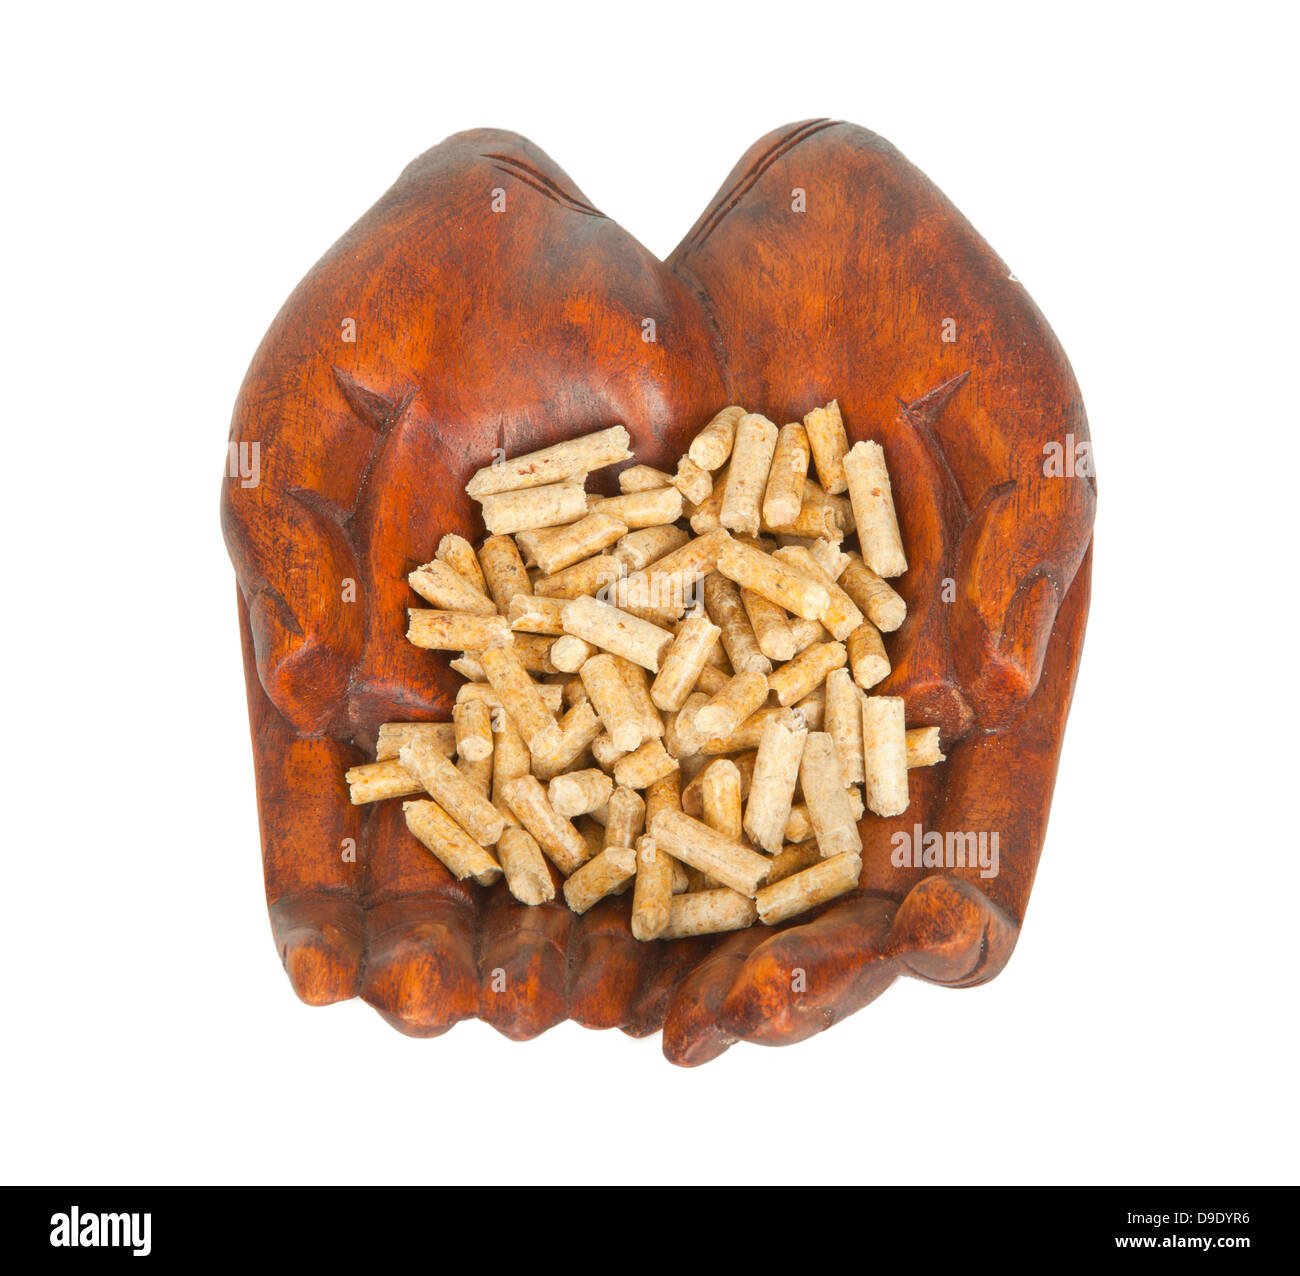 Wood pellets in hand on white background - Stock Image